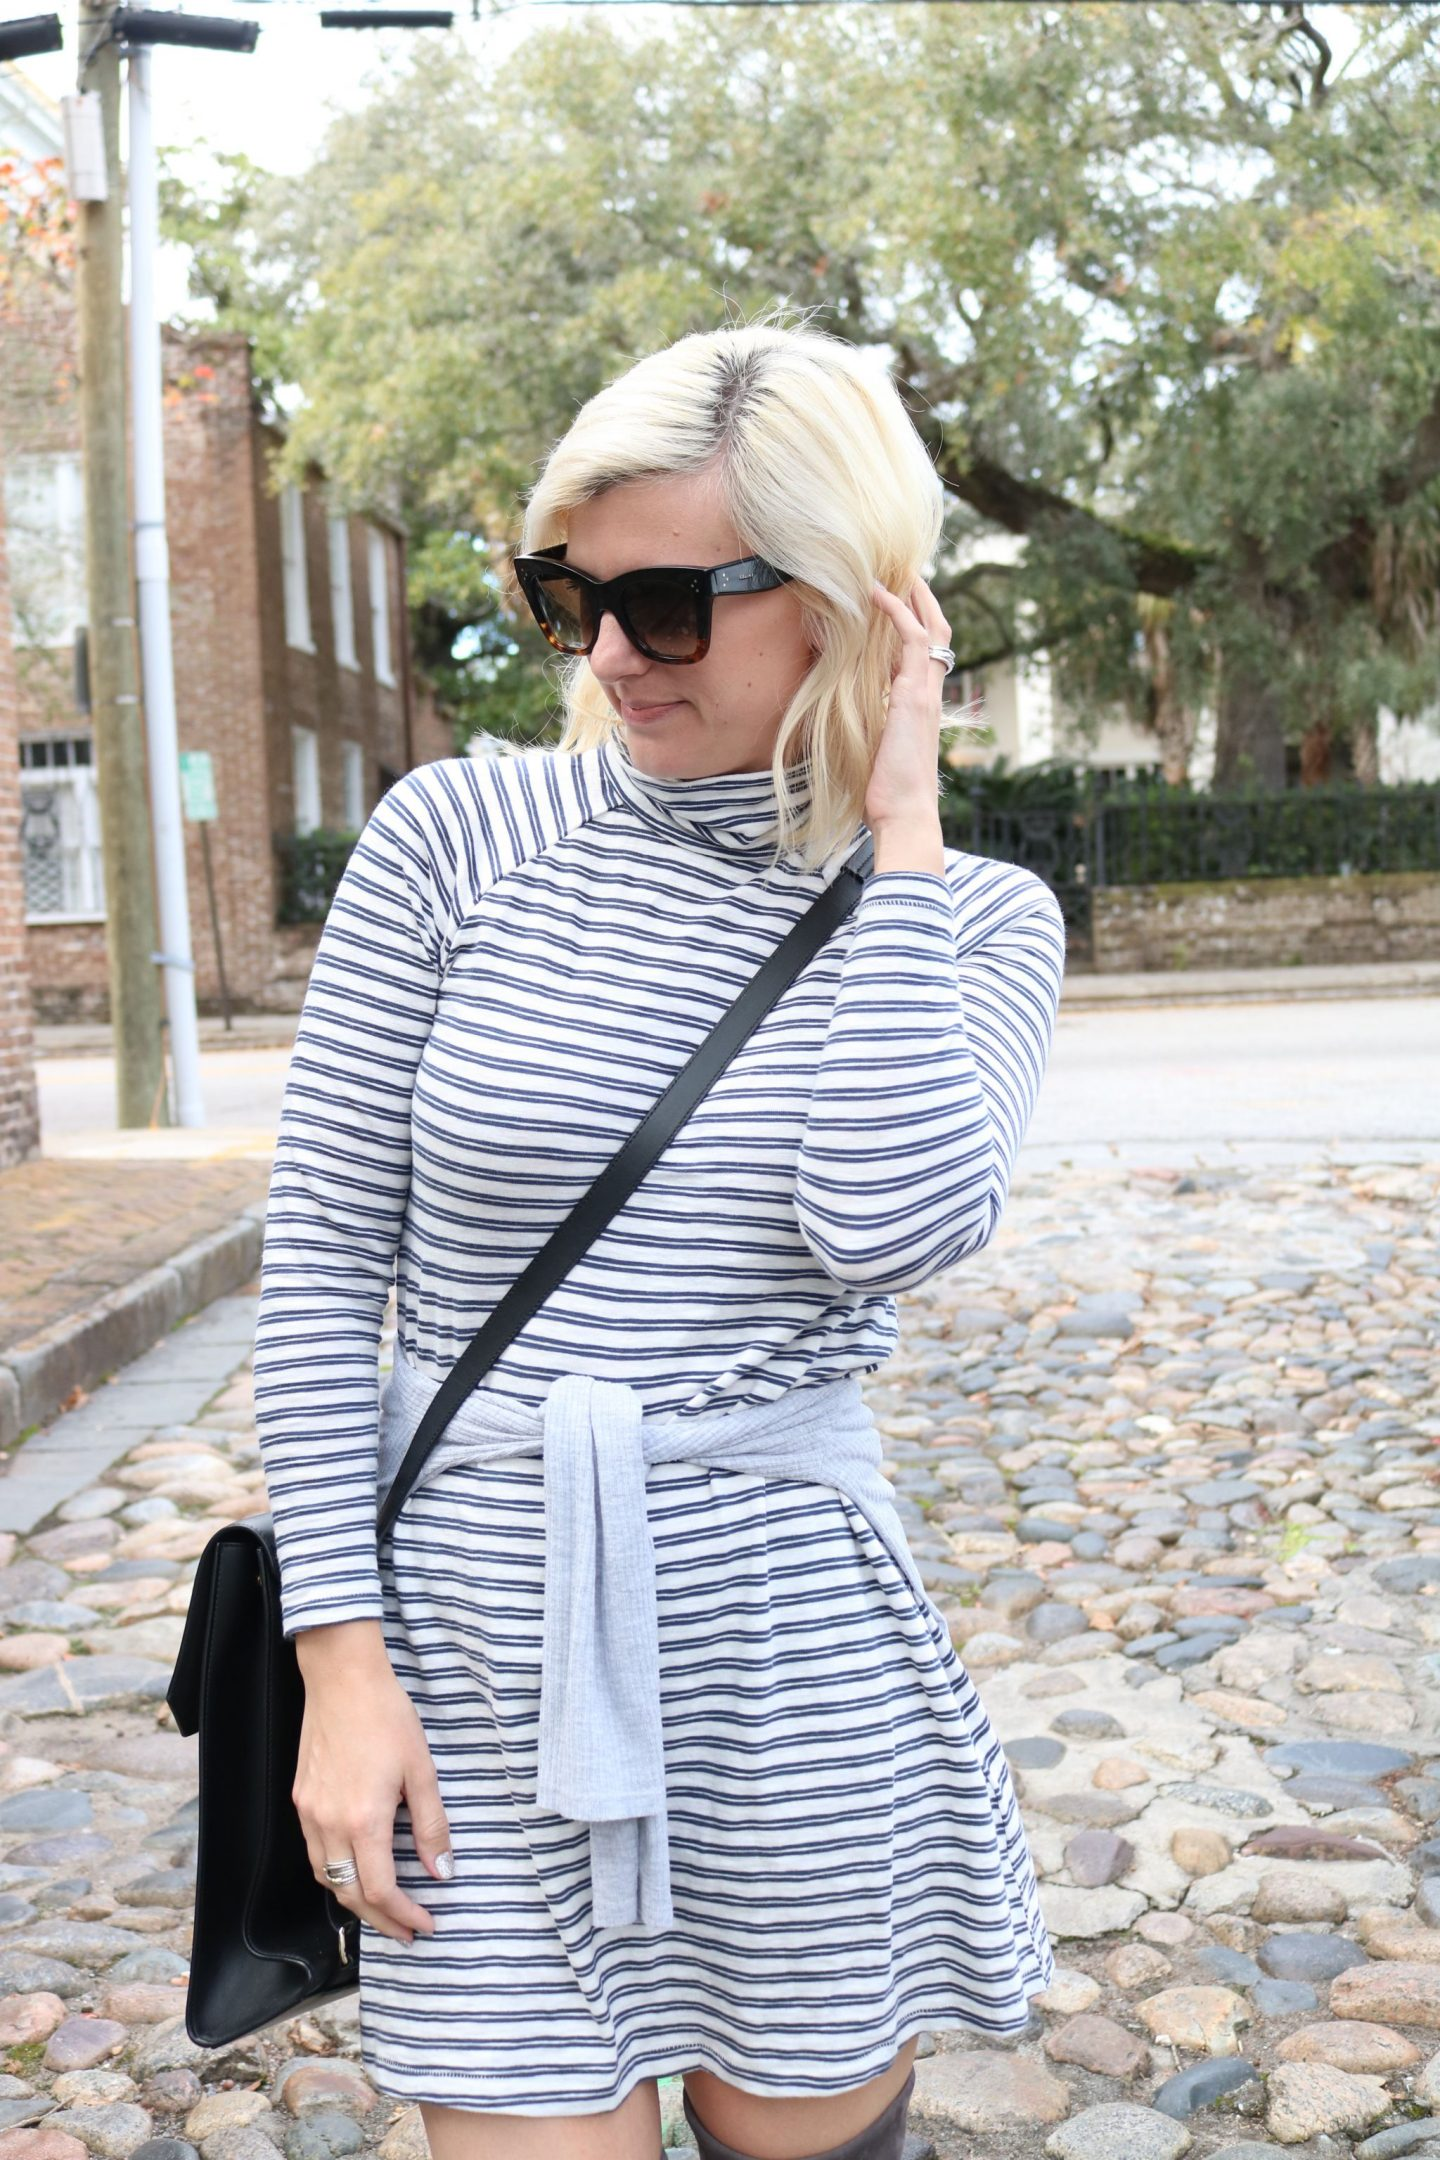 Abercrombie, Stuart Weitzman, Celine sunglasses, chandra keyser bag, striped turtleneck dress, charleston south carolina, settling southern